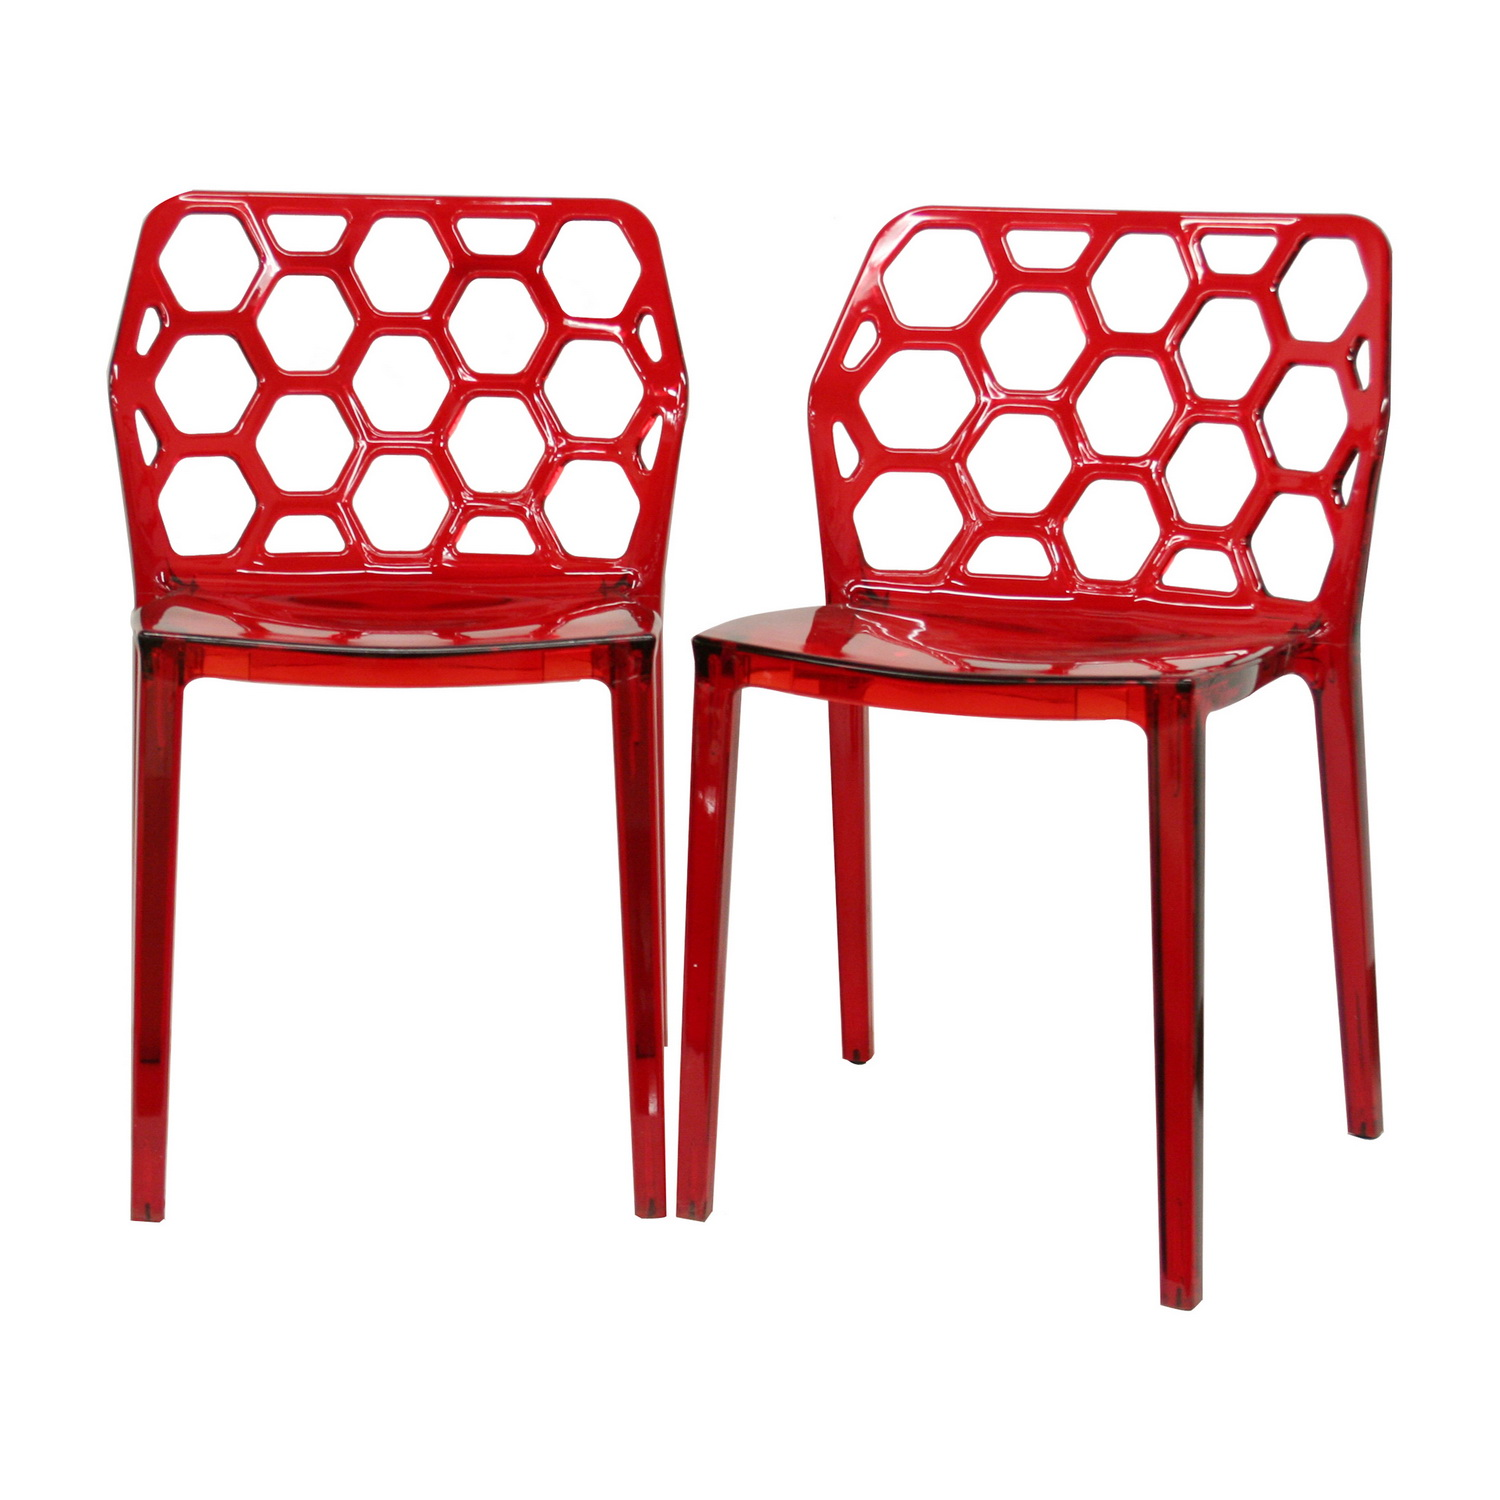 Furniture dining room furniture chair contemporary for Red modern dining chairs